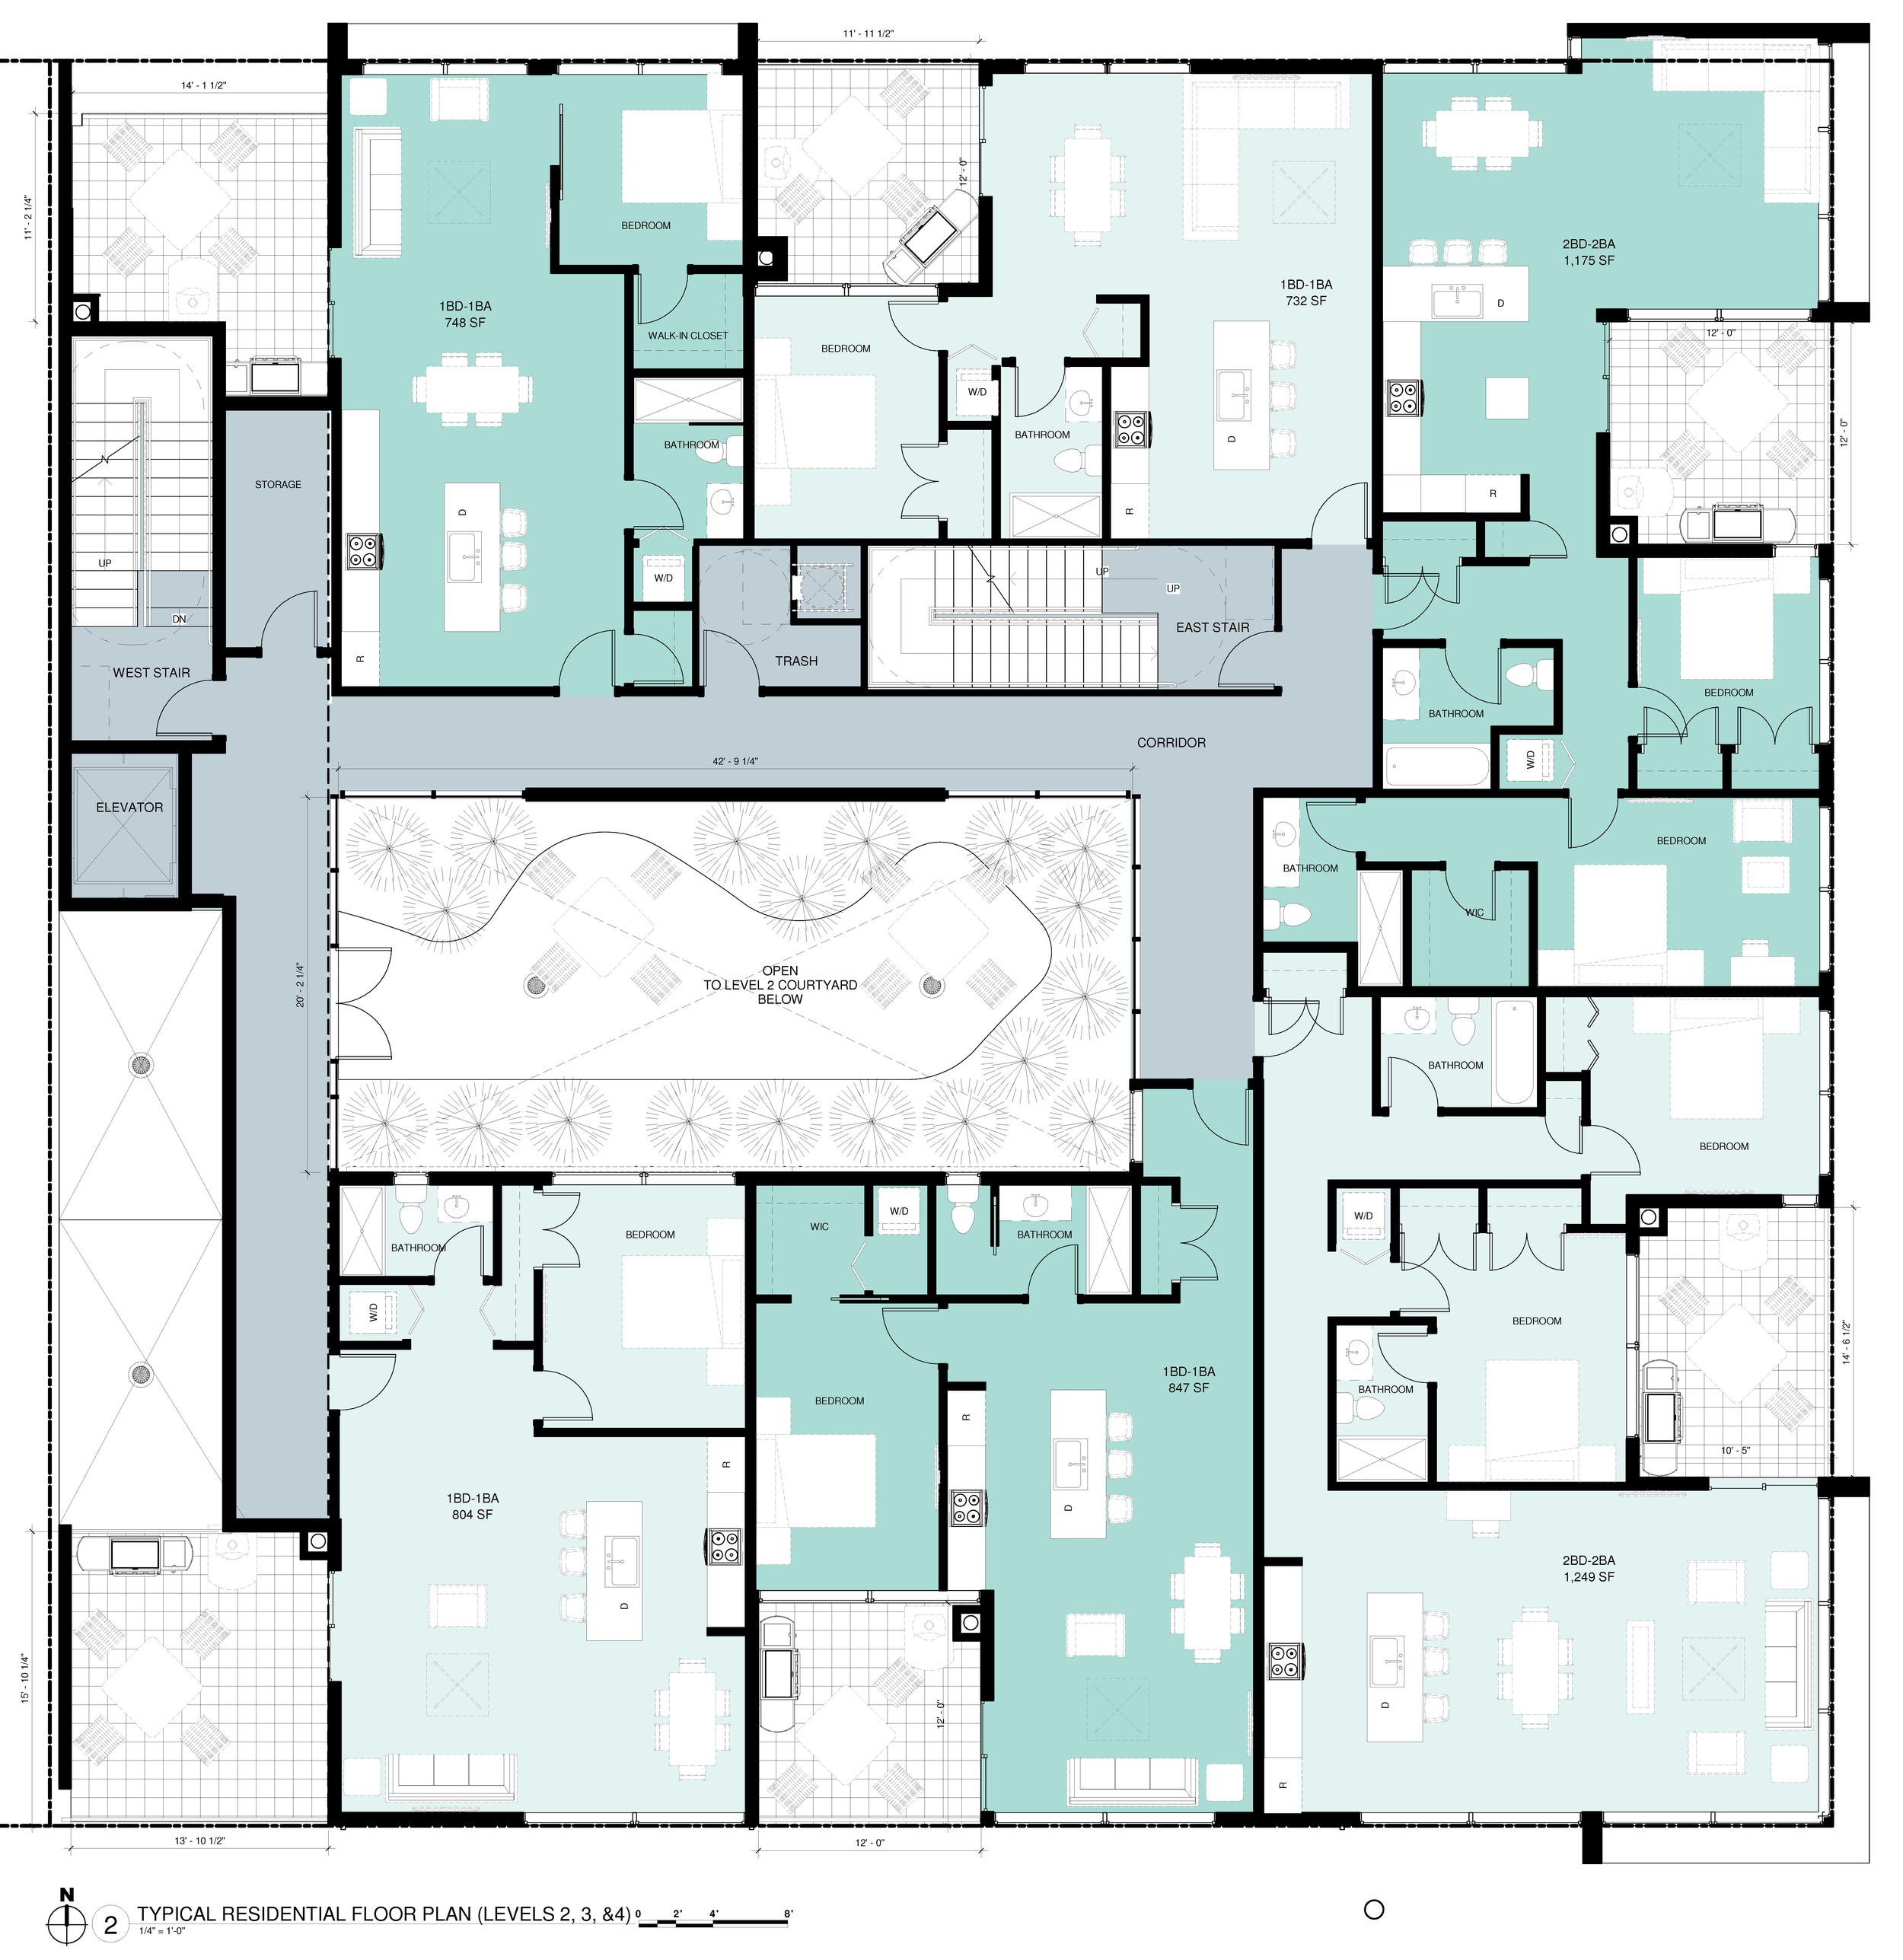 05 - TYPICAL RESIDENTIAL FLOOR PLAN (LEVELS 2, 3 & 4) for blog.jpg